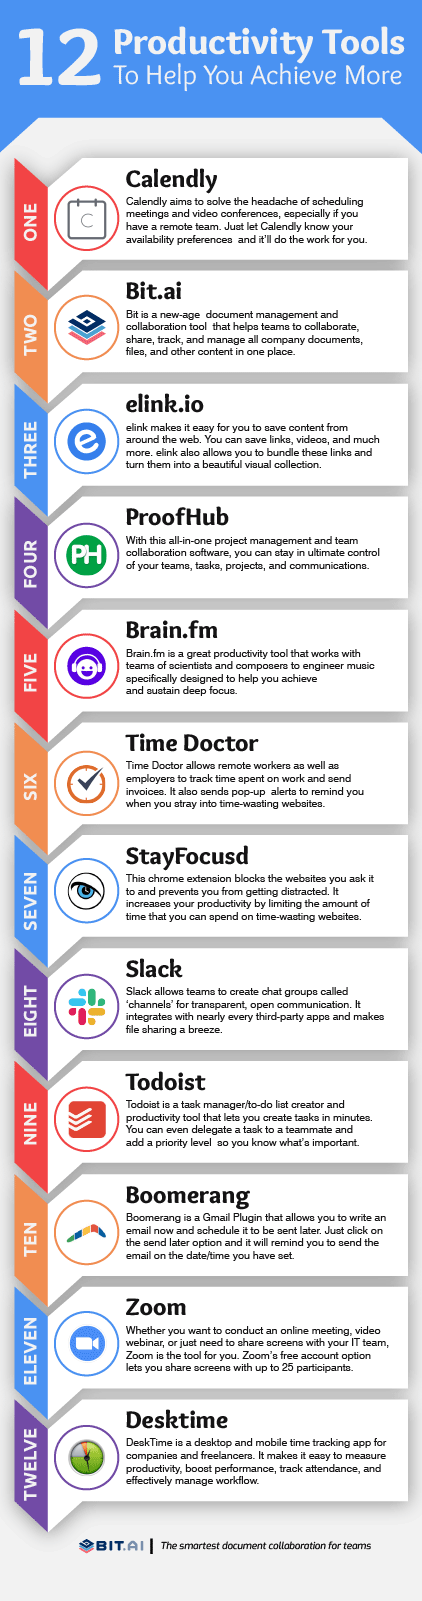 Productivity tools infographic